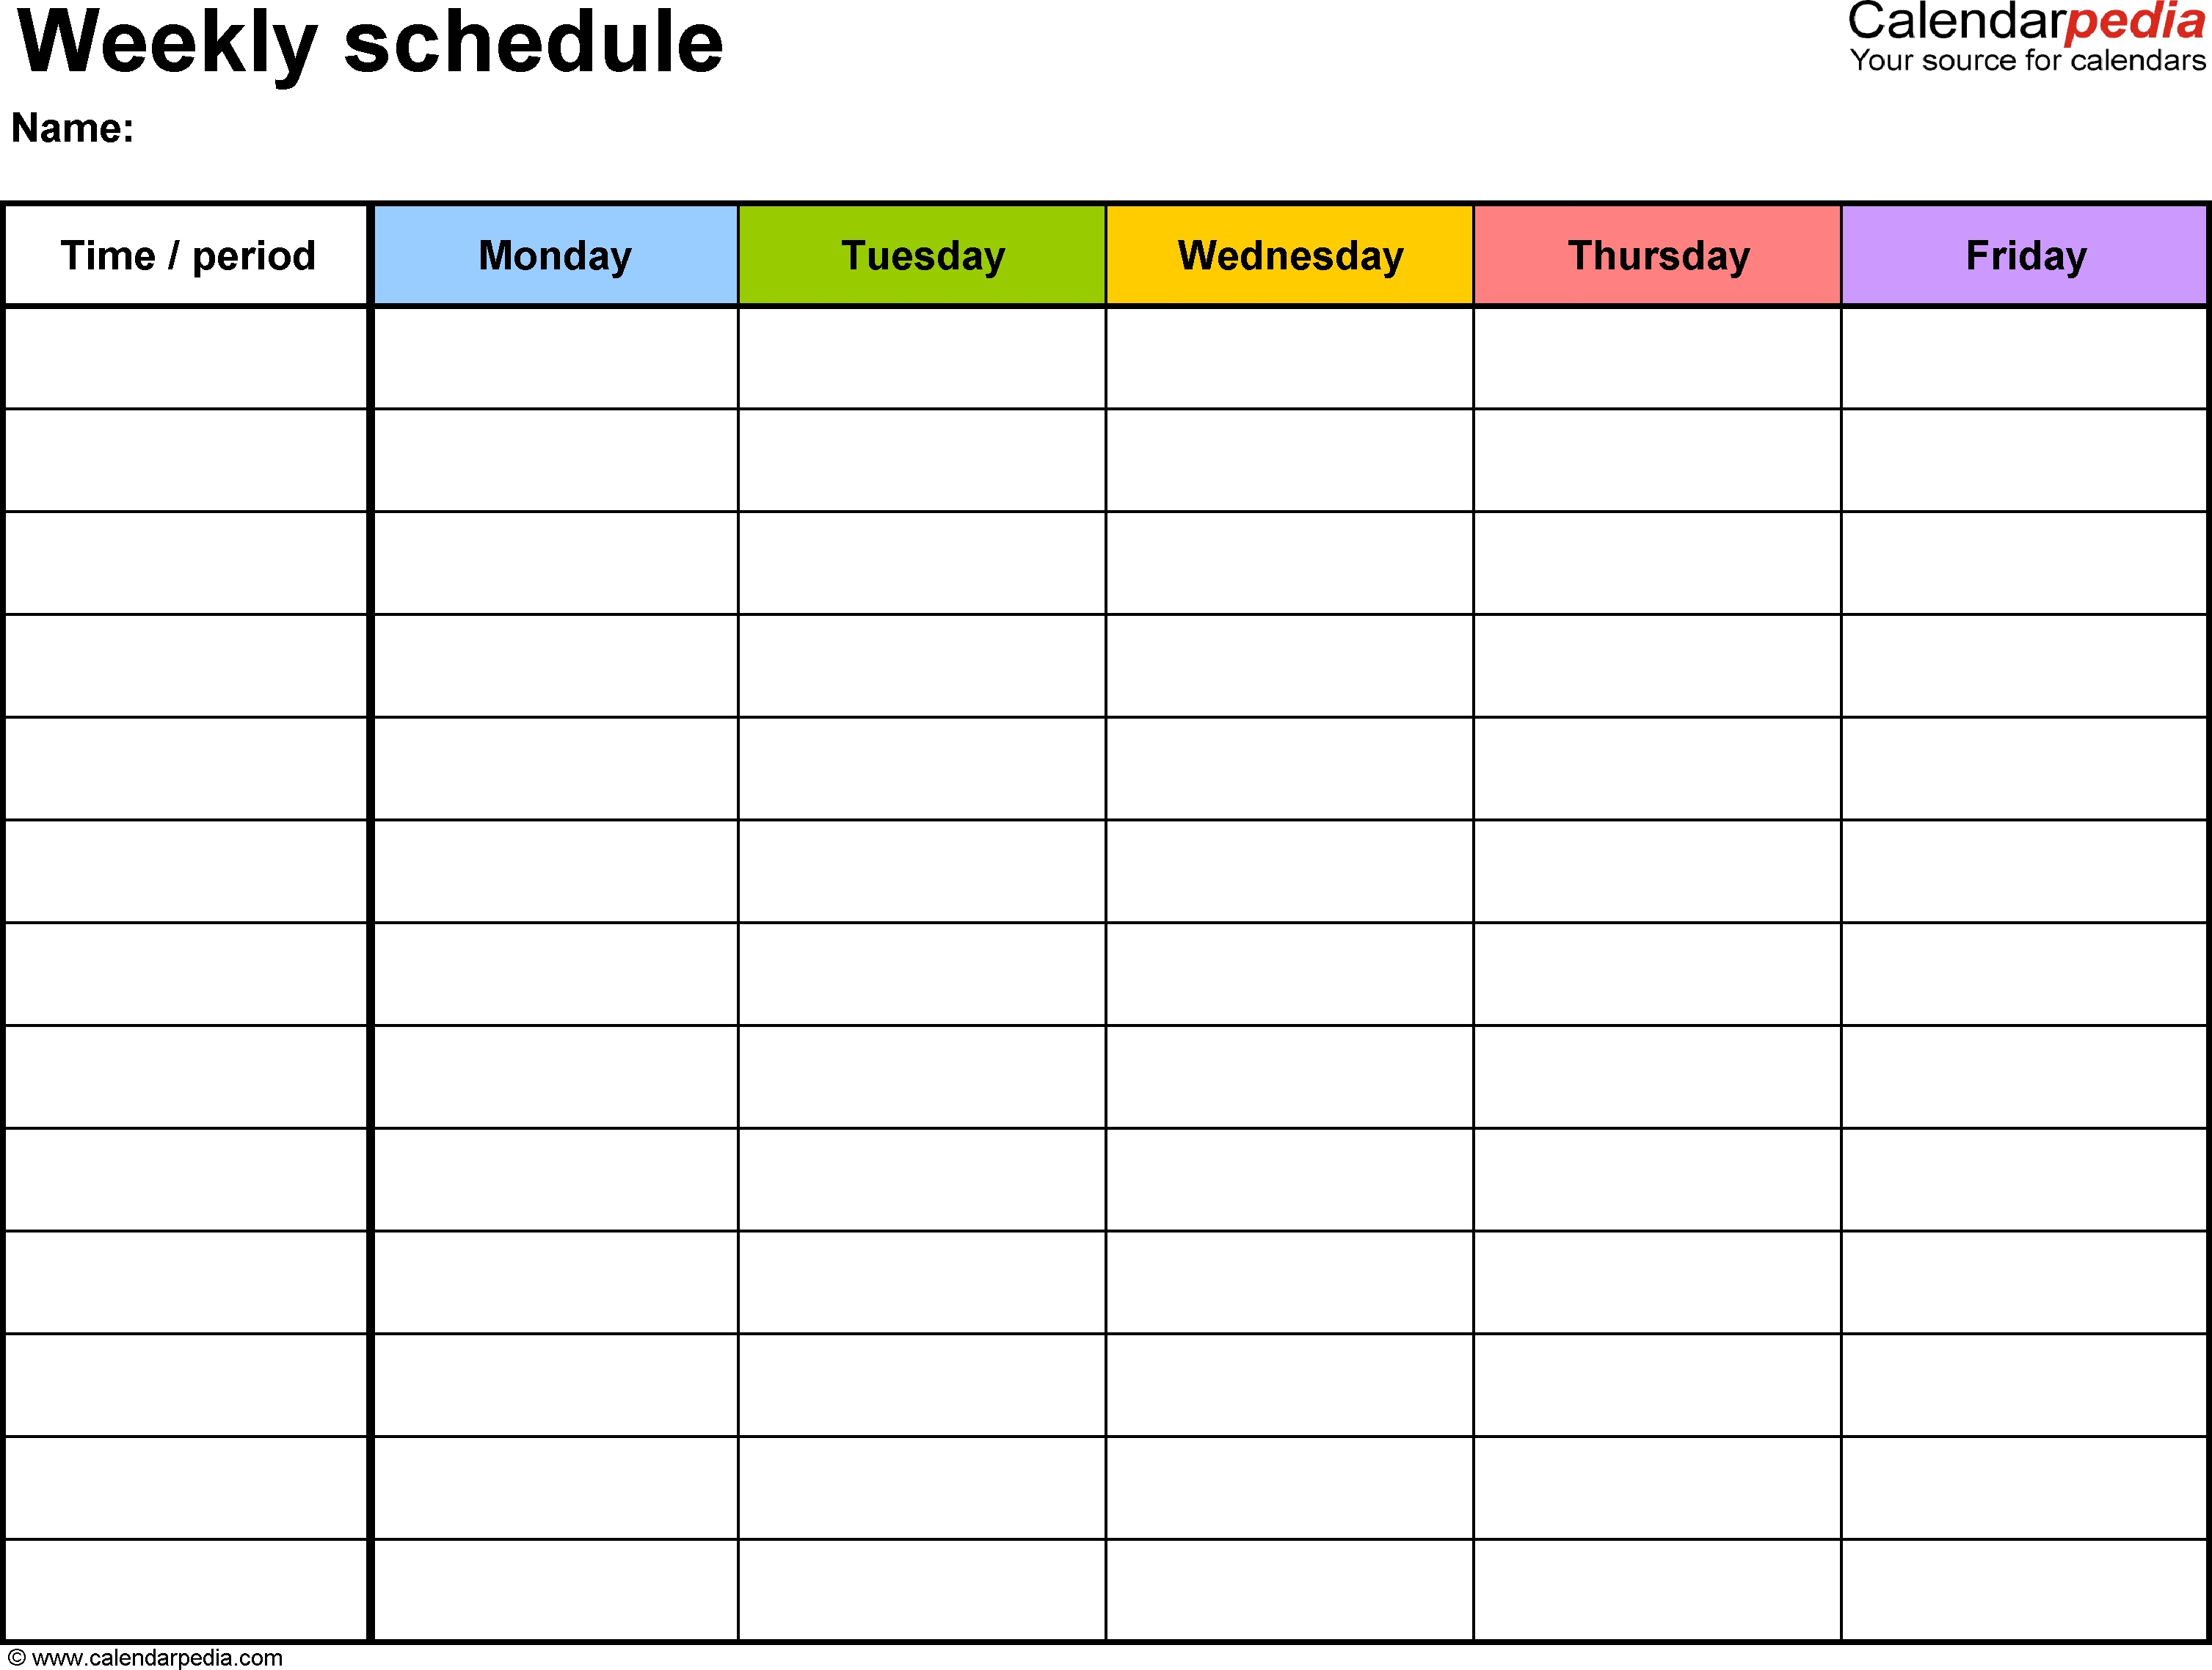 Free Weekly Schedule Templates For Word - 18 Templates with regard to 5 Day Calendar Template Free